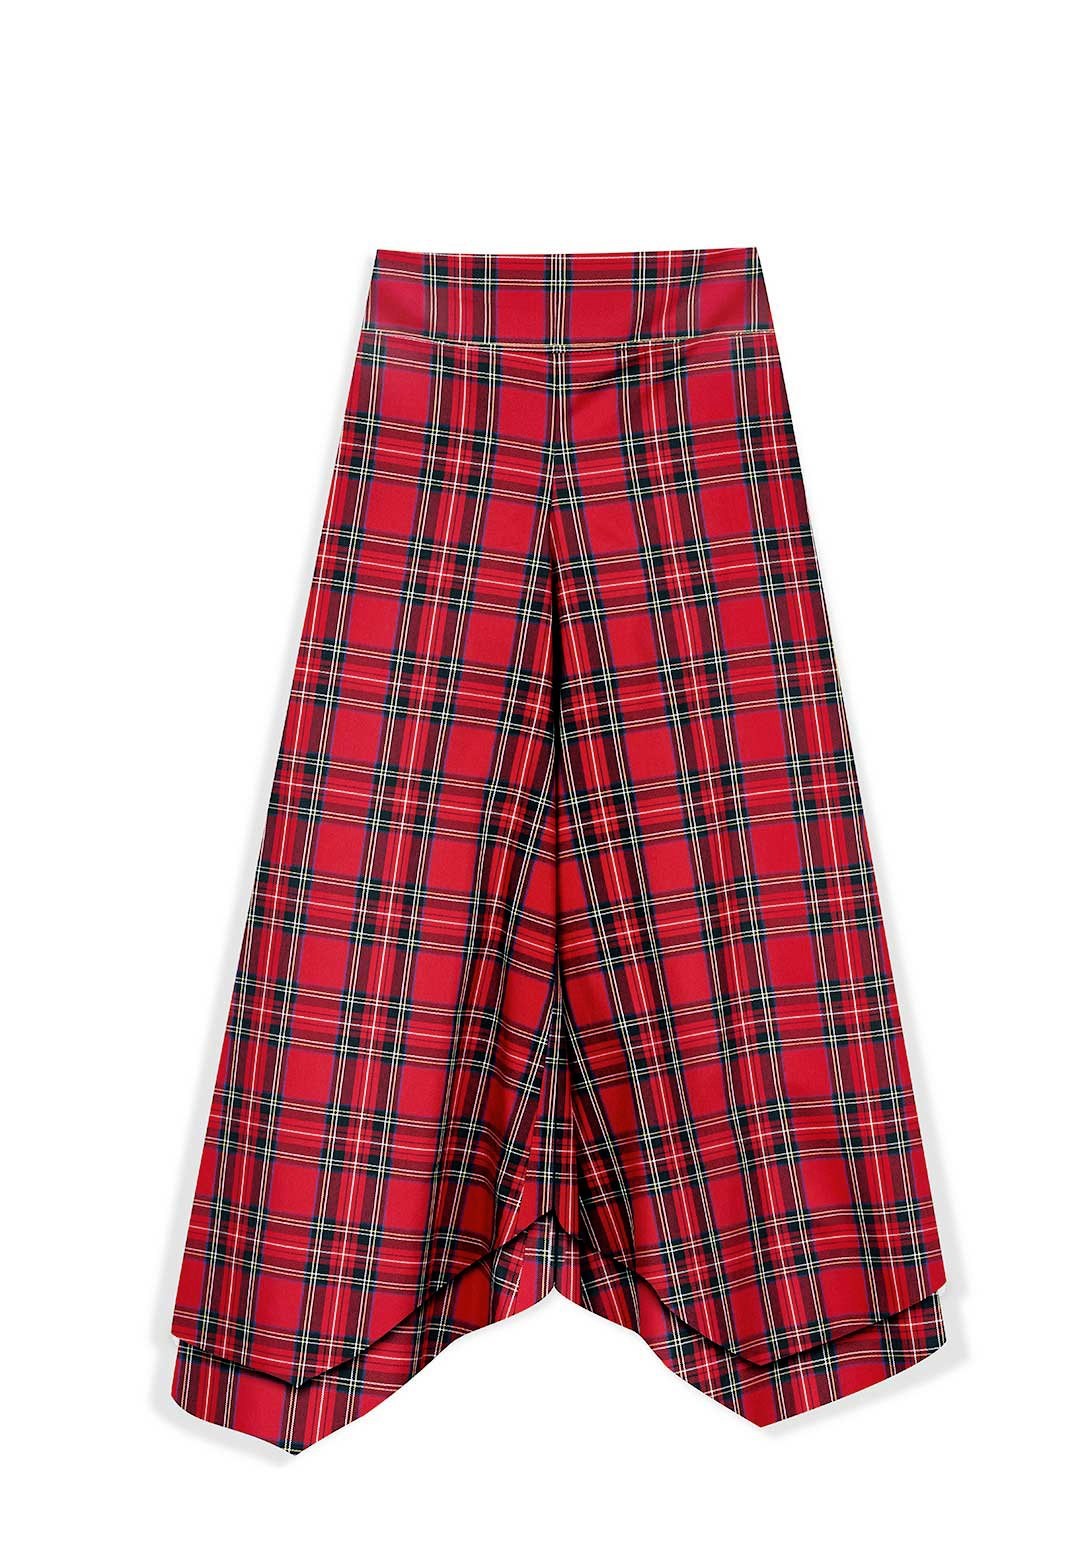 Marrs Makers 'Work-it-from-Anywhere' Pants in Red Tartan Plaid Italian Cotton. Let these pants do the work as you transition from the sofa to errands, an outdoor cafe, then back to video conference. Effortless Elegance. Maximum Breathability. Front View.